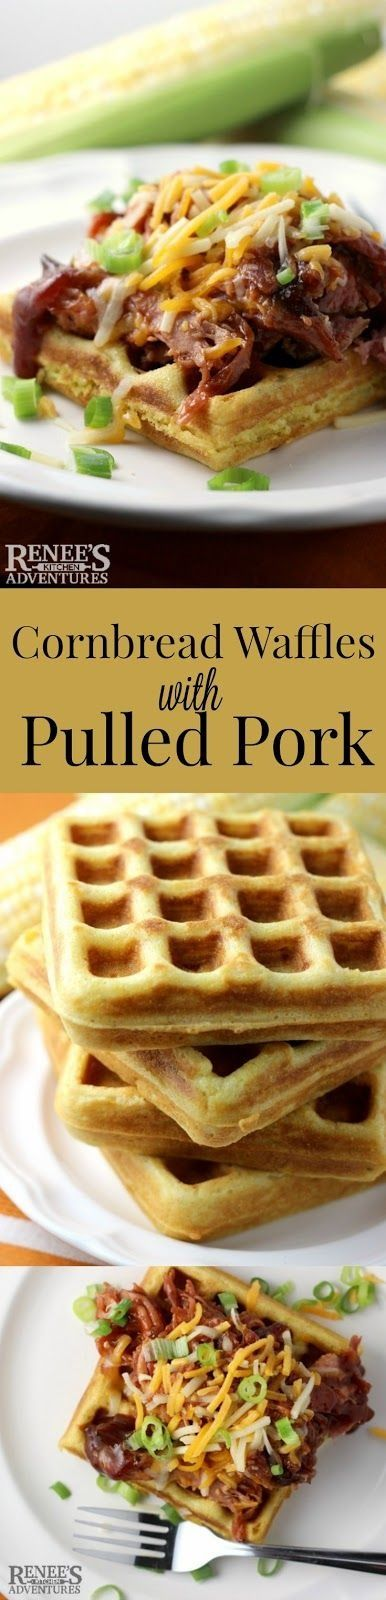 Cornbread Waffles with Pulled Pork